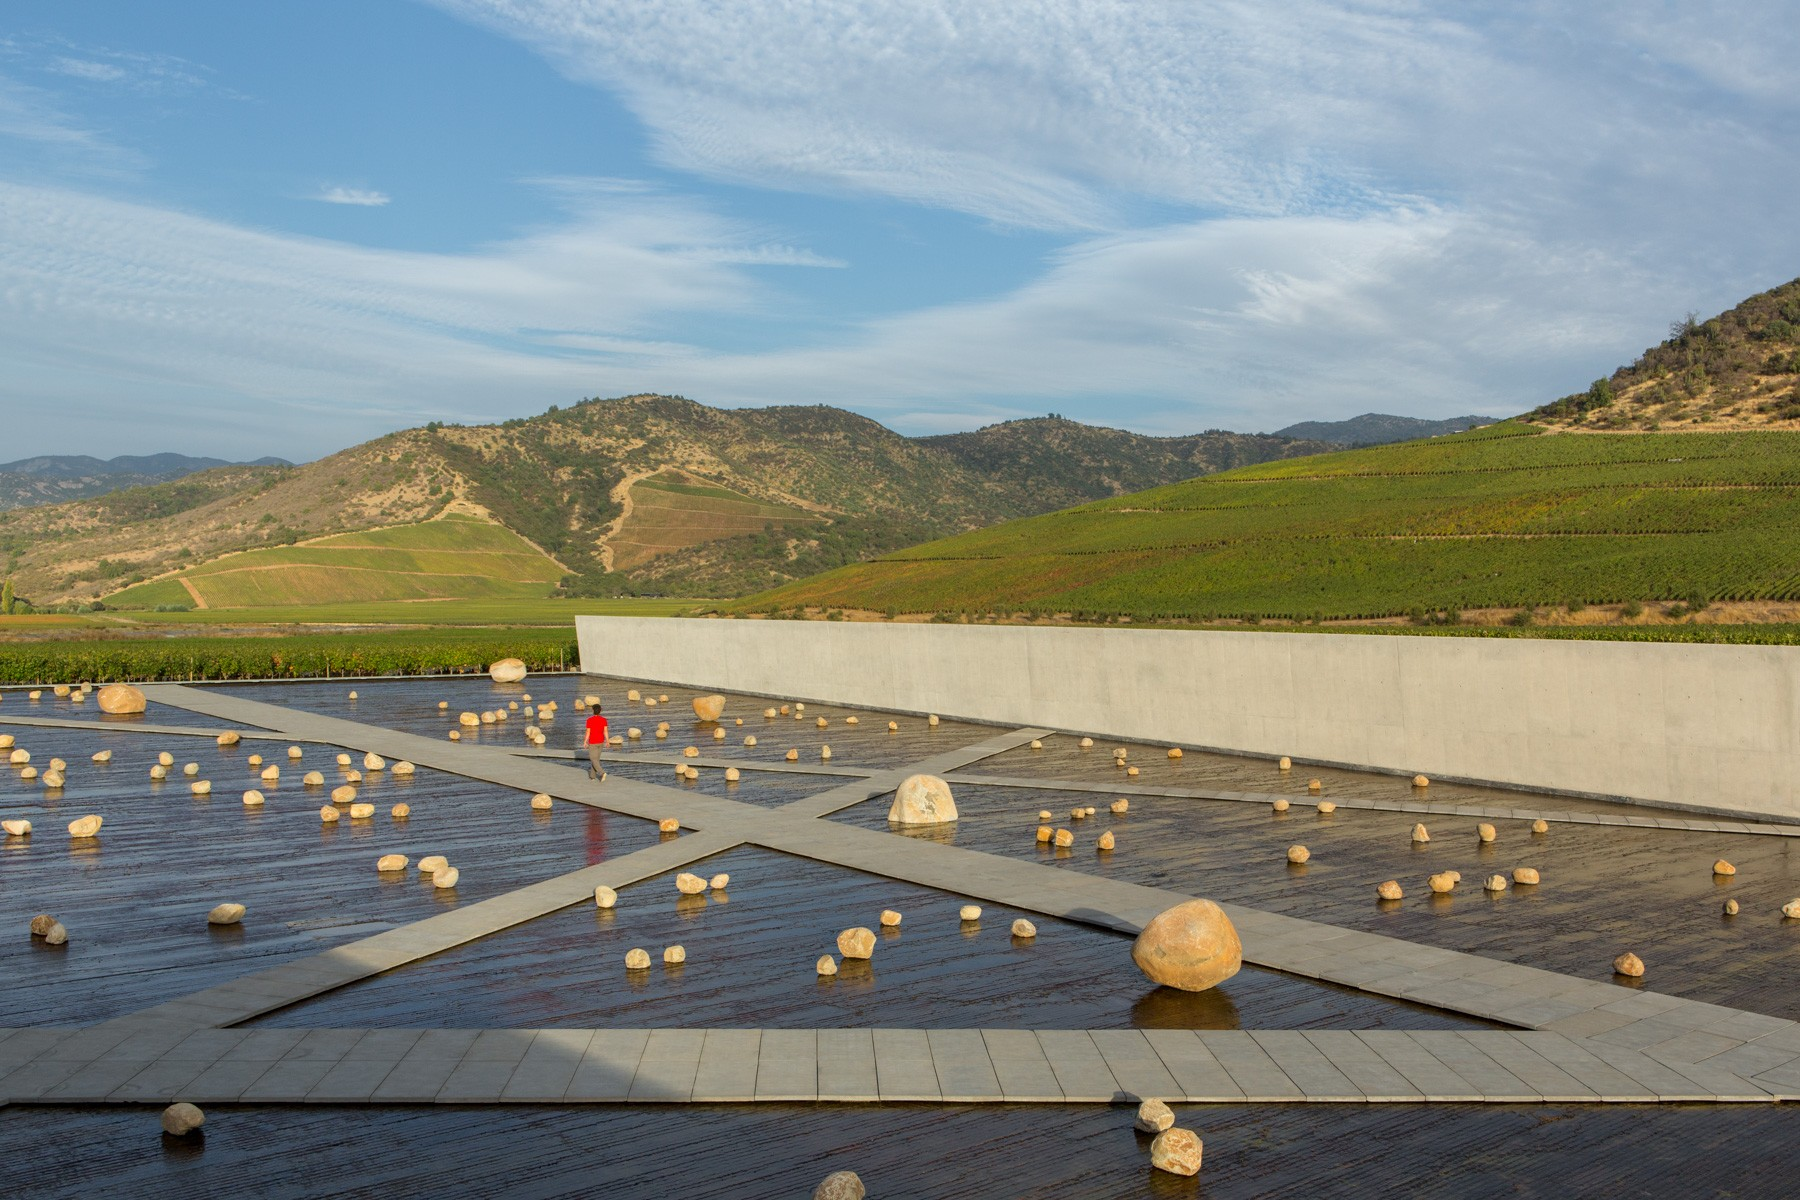 VIK - Holistic Vineyard, Millahue Chile